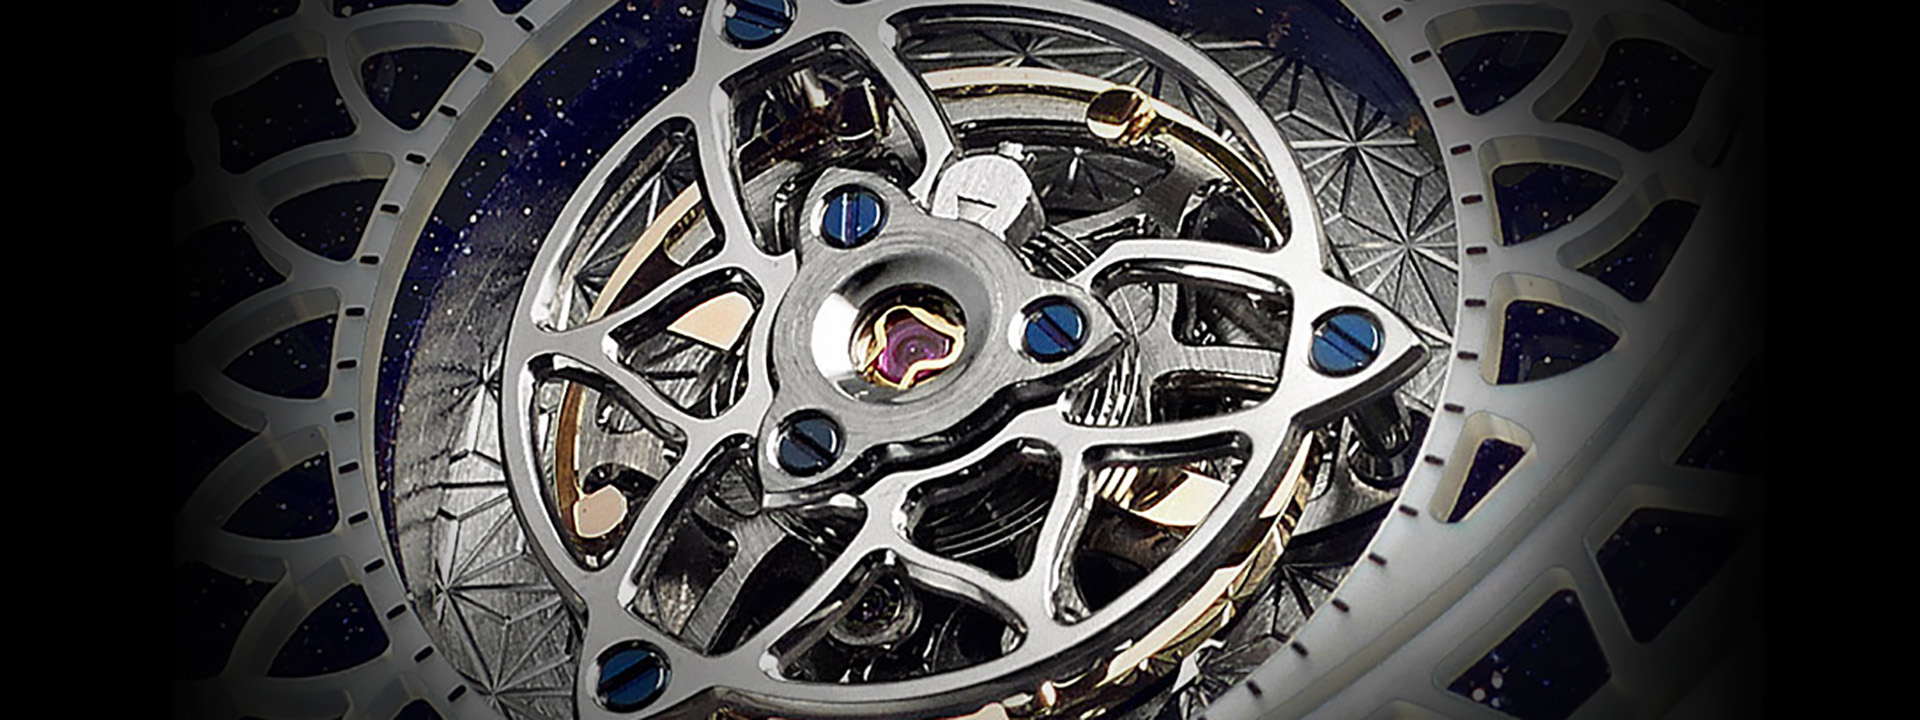 Jaeger lecoultre hybris artistica mysterieuse watchfinder co sciox Choice Image